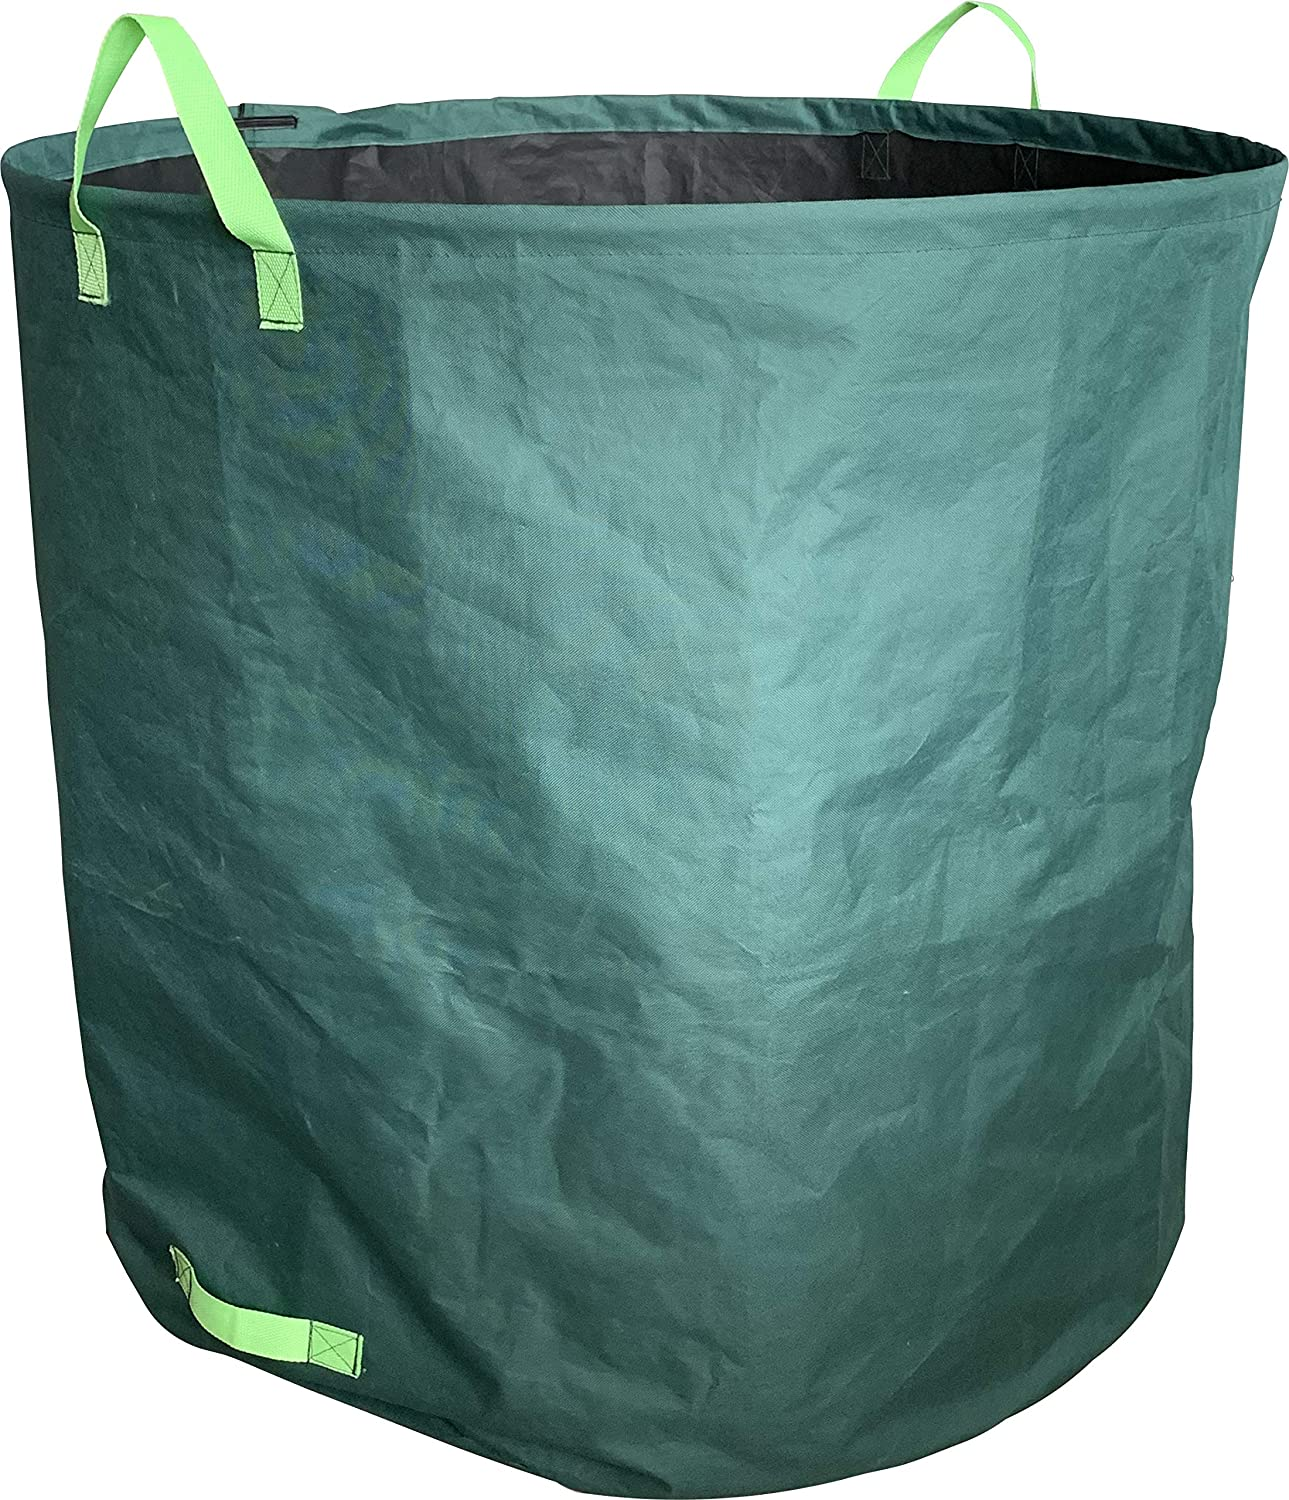 Ugold Fabric Reusable Yard Waste Bag, Leaf Bag, Work for Garden, Lawn and Patio, Clean Up Leaves and Waste (132 Gallons)